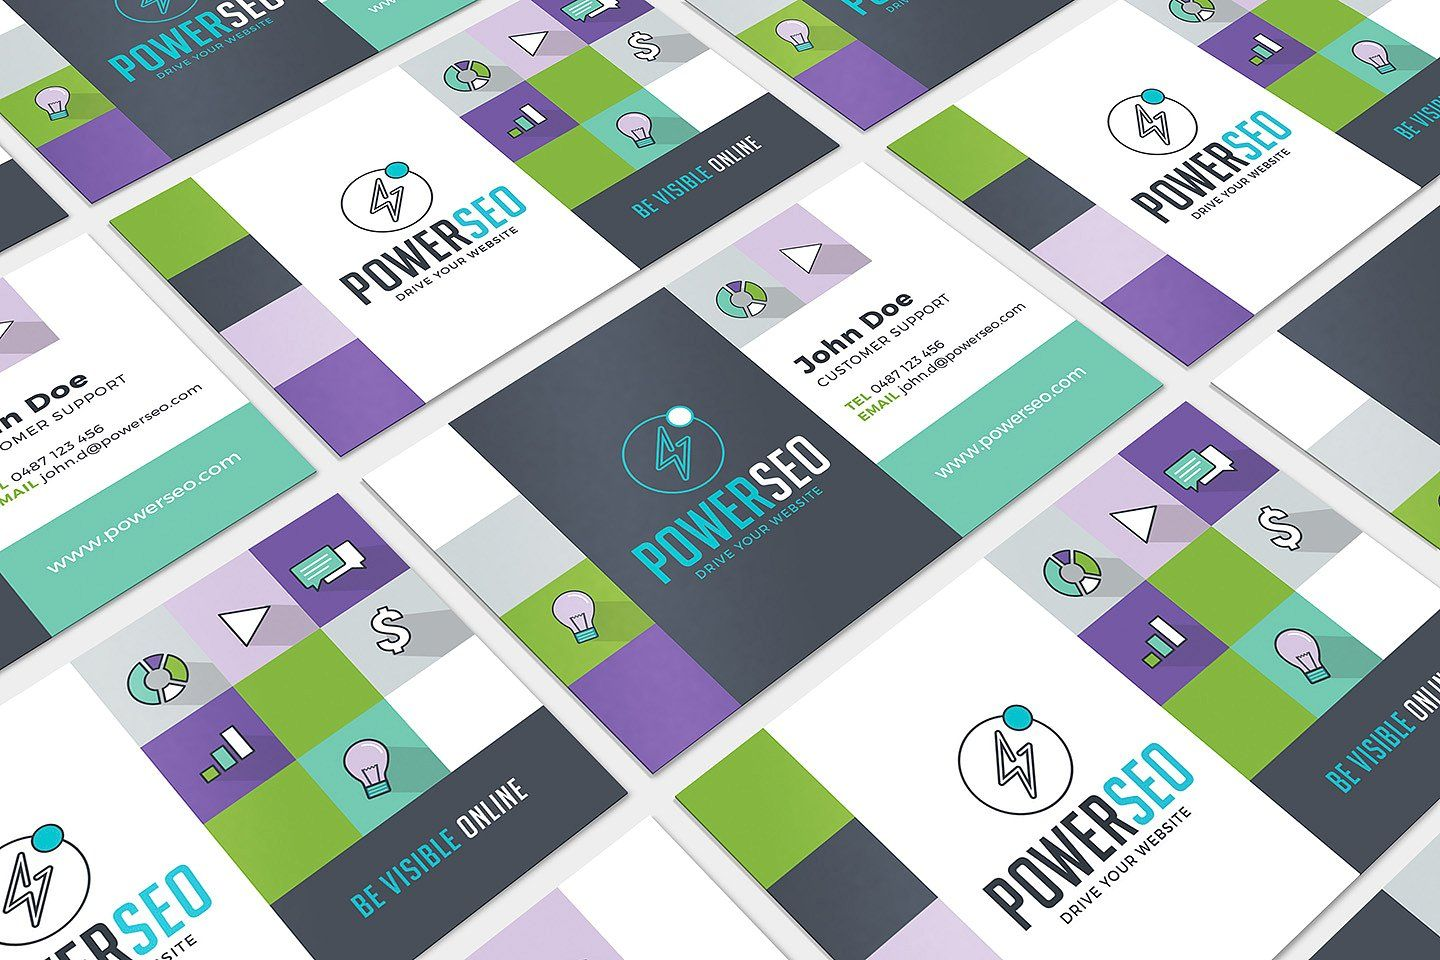 SEO Agency Business Card Template IllustratorformatStockPhotoshop